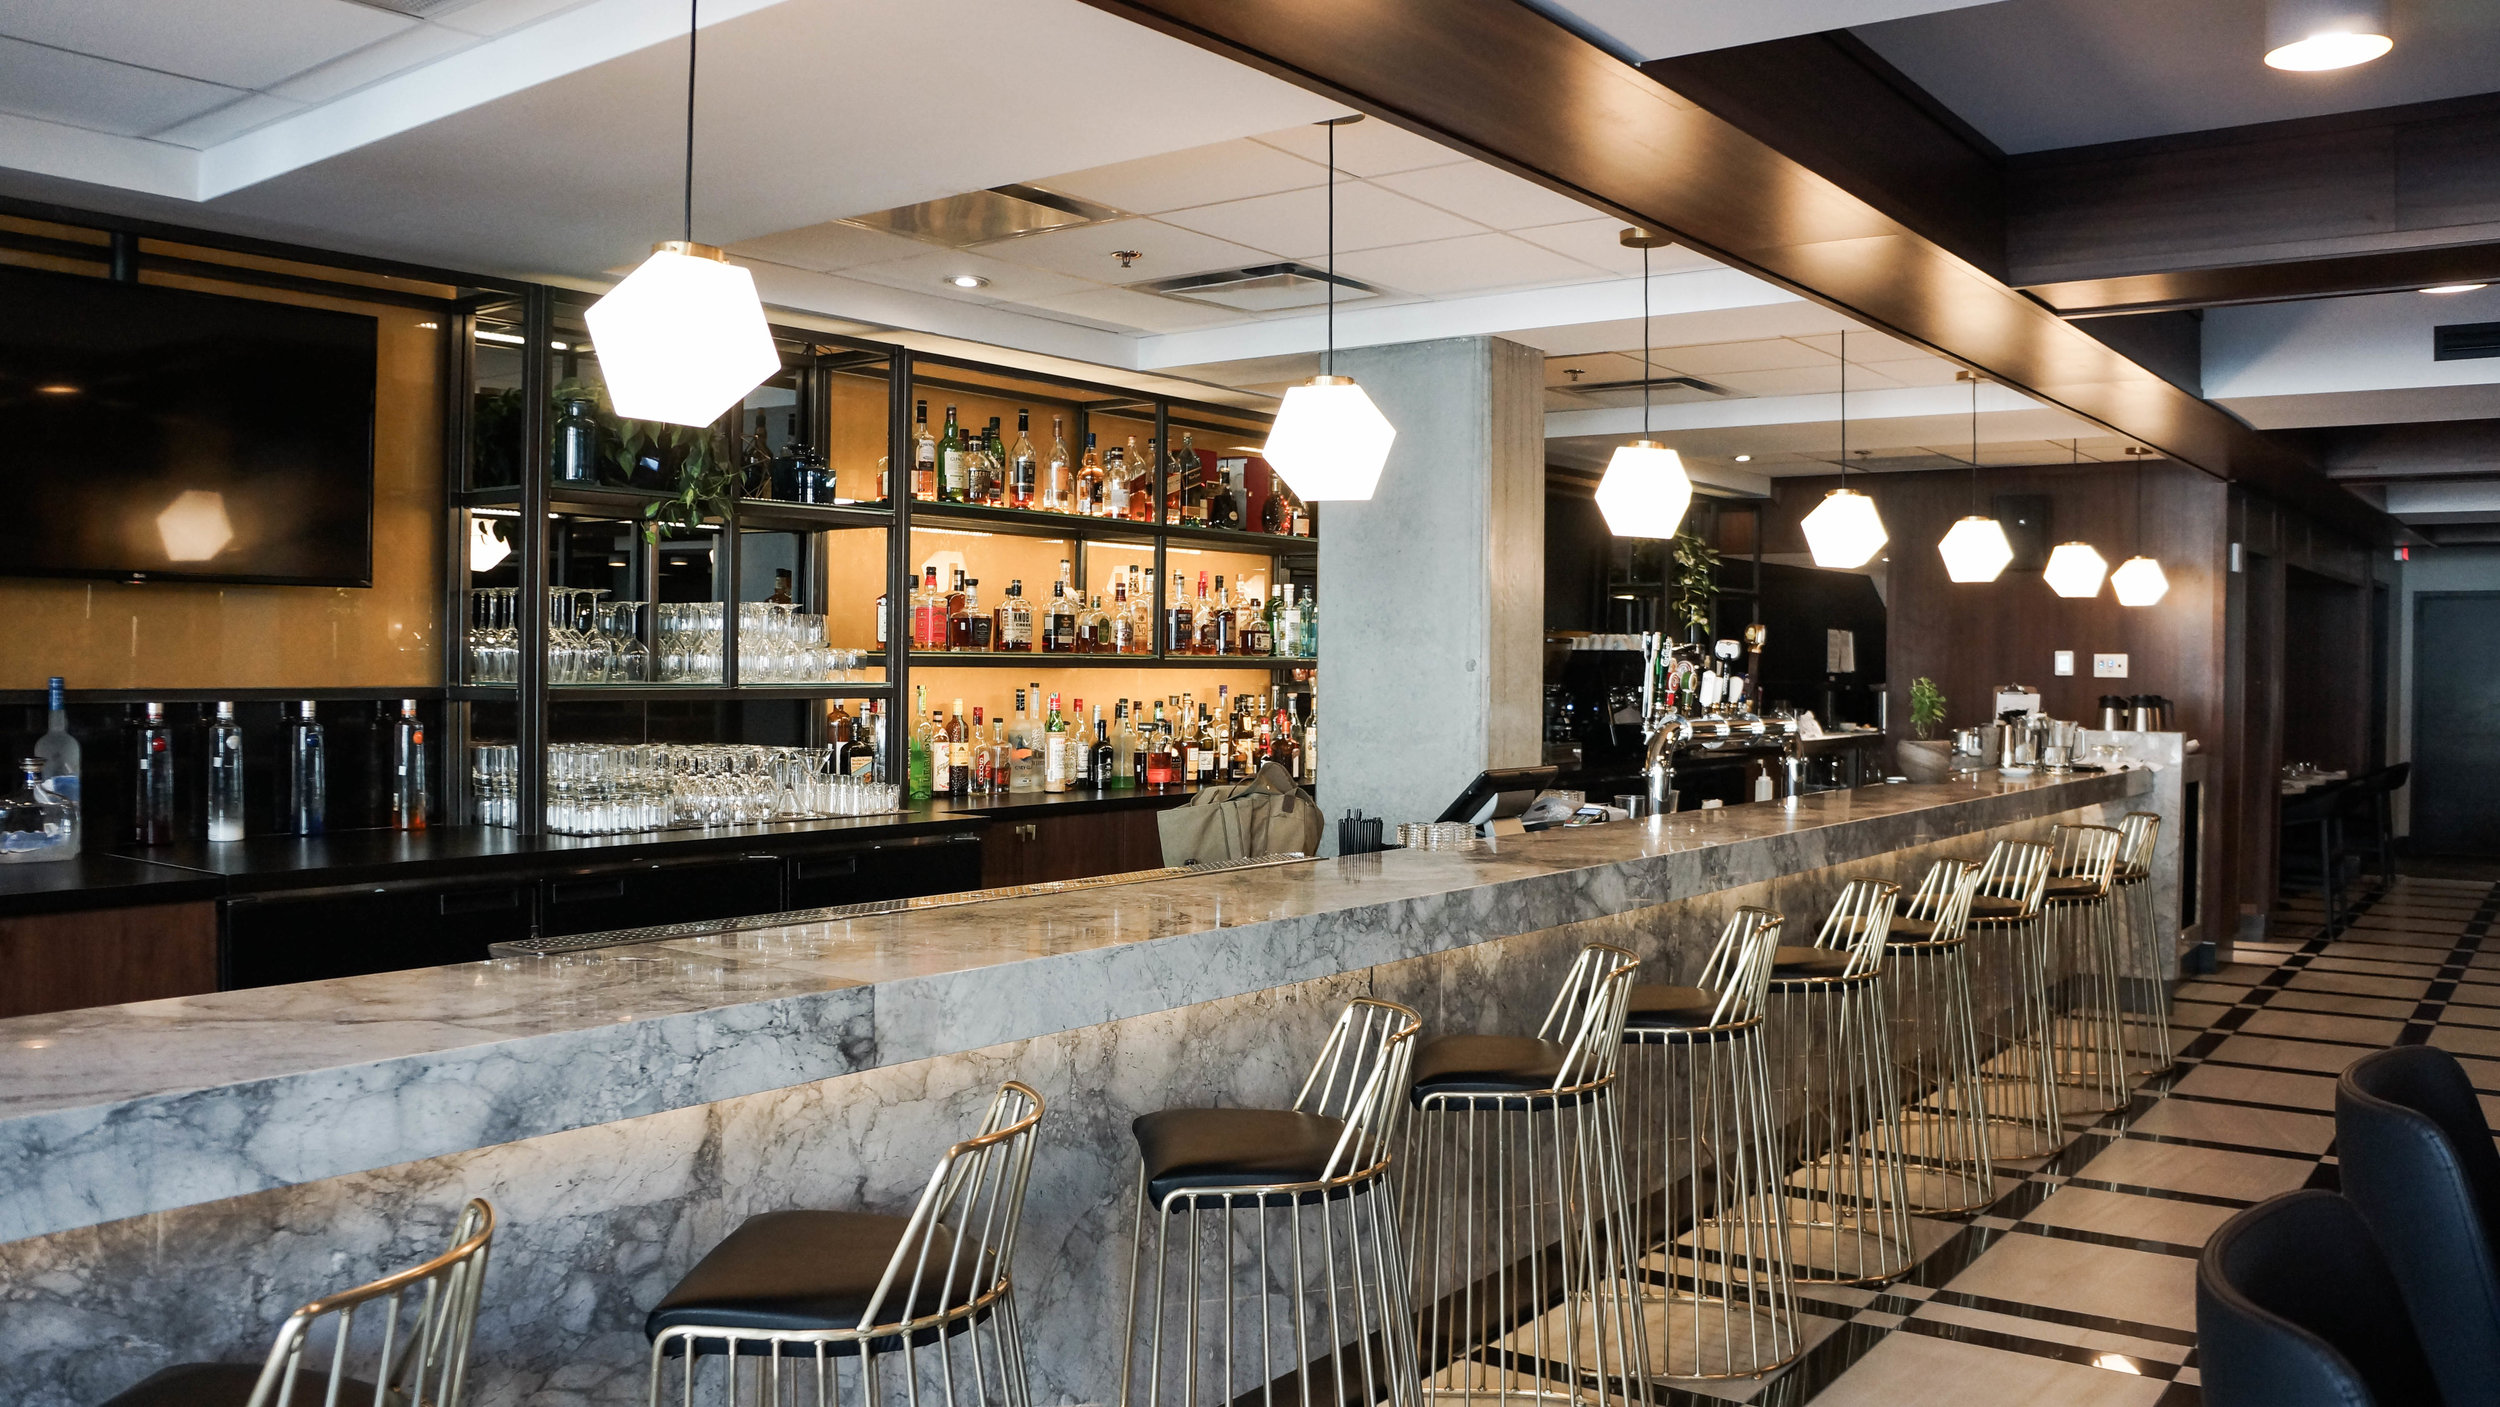 The marble bar at Maggie Oakes